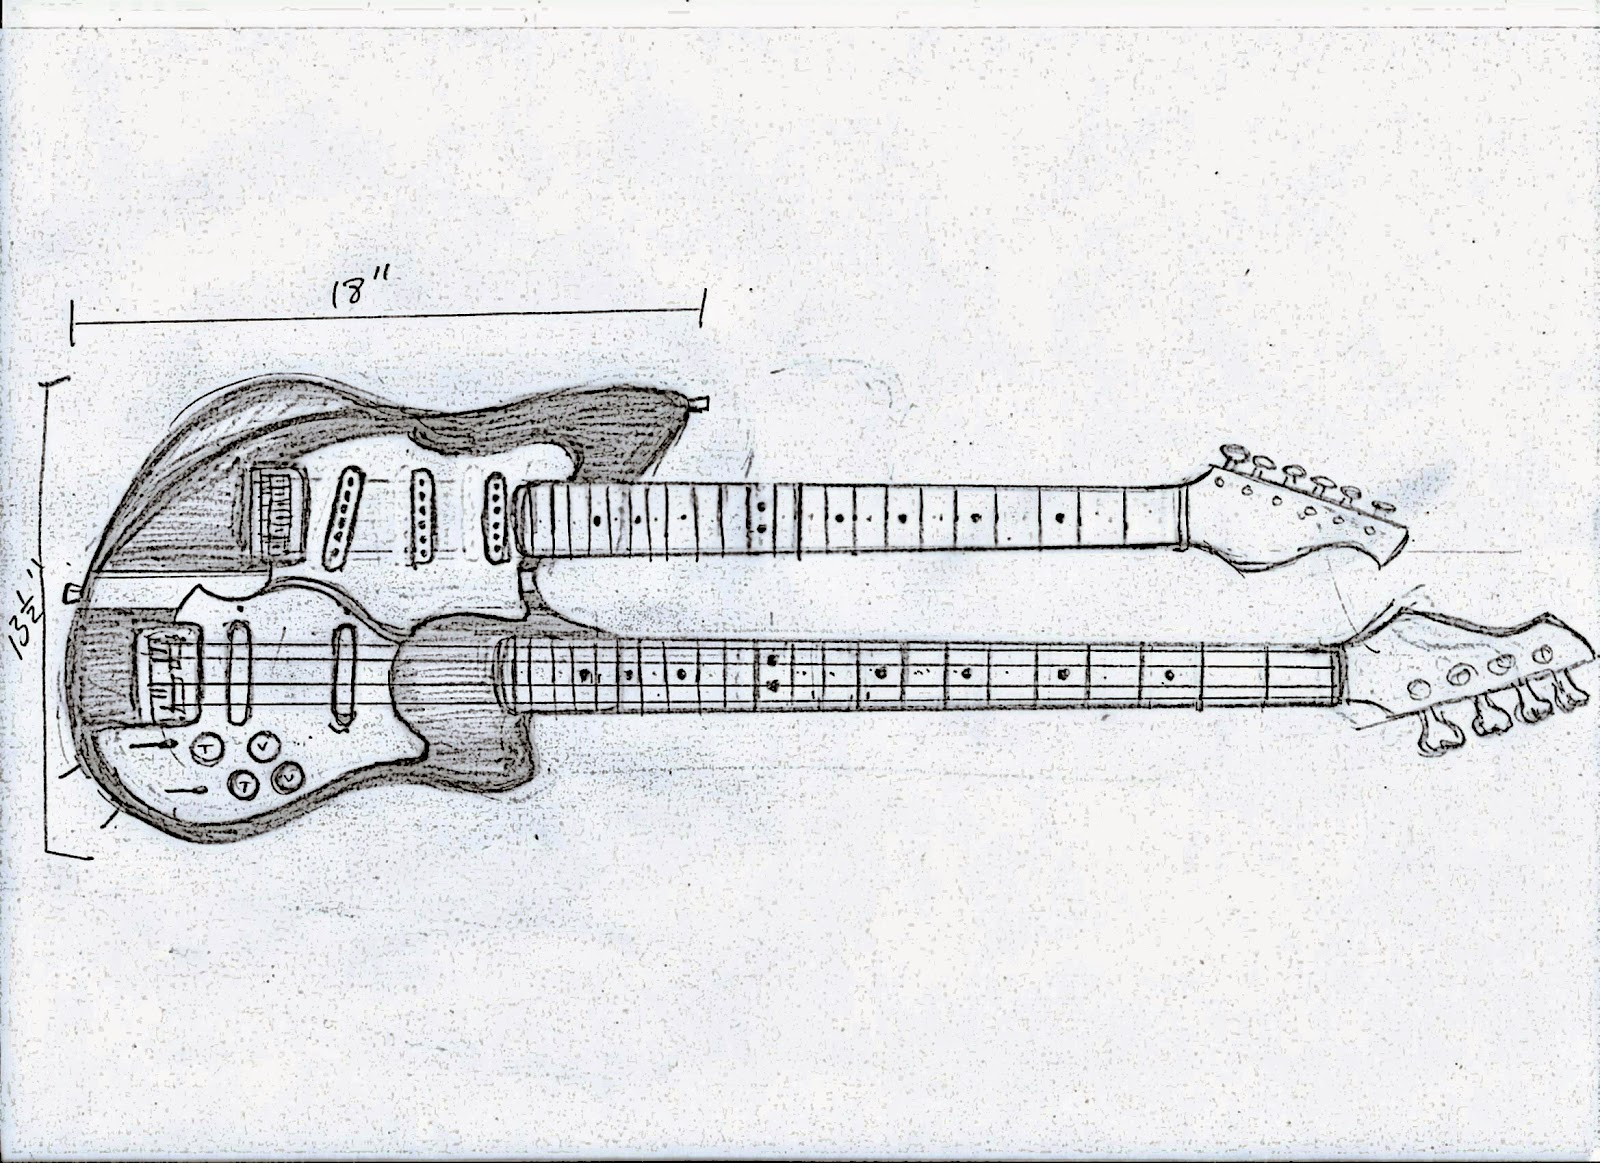 Shonky Double Neck Guitar 6 String Bass Sg Wiring Diagram Mockup Which Doubled As A Template